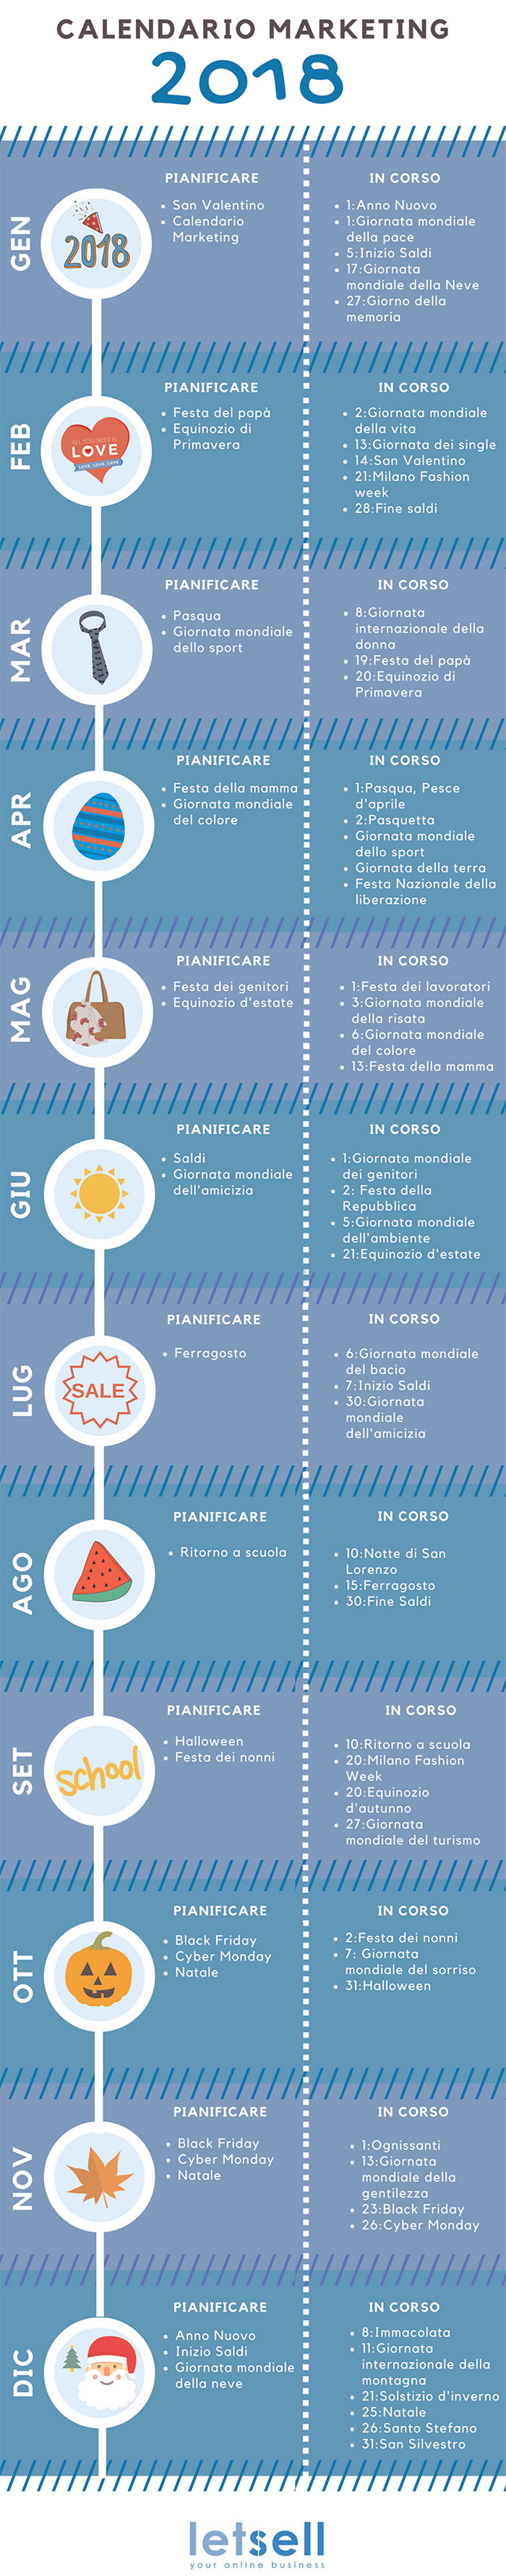 letsell - Calendario Marketing